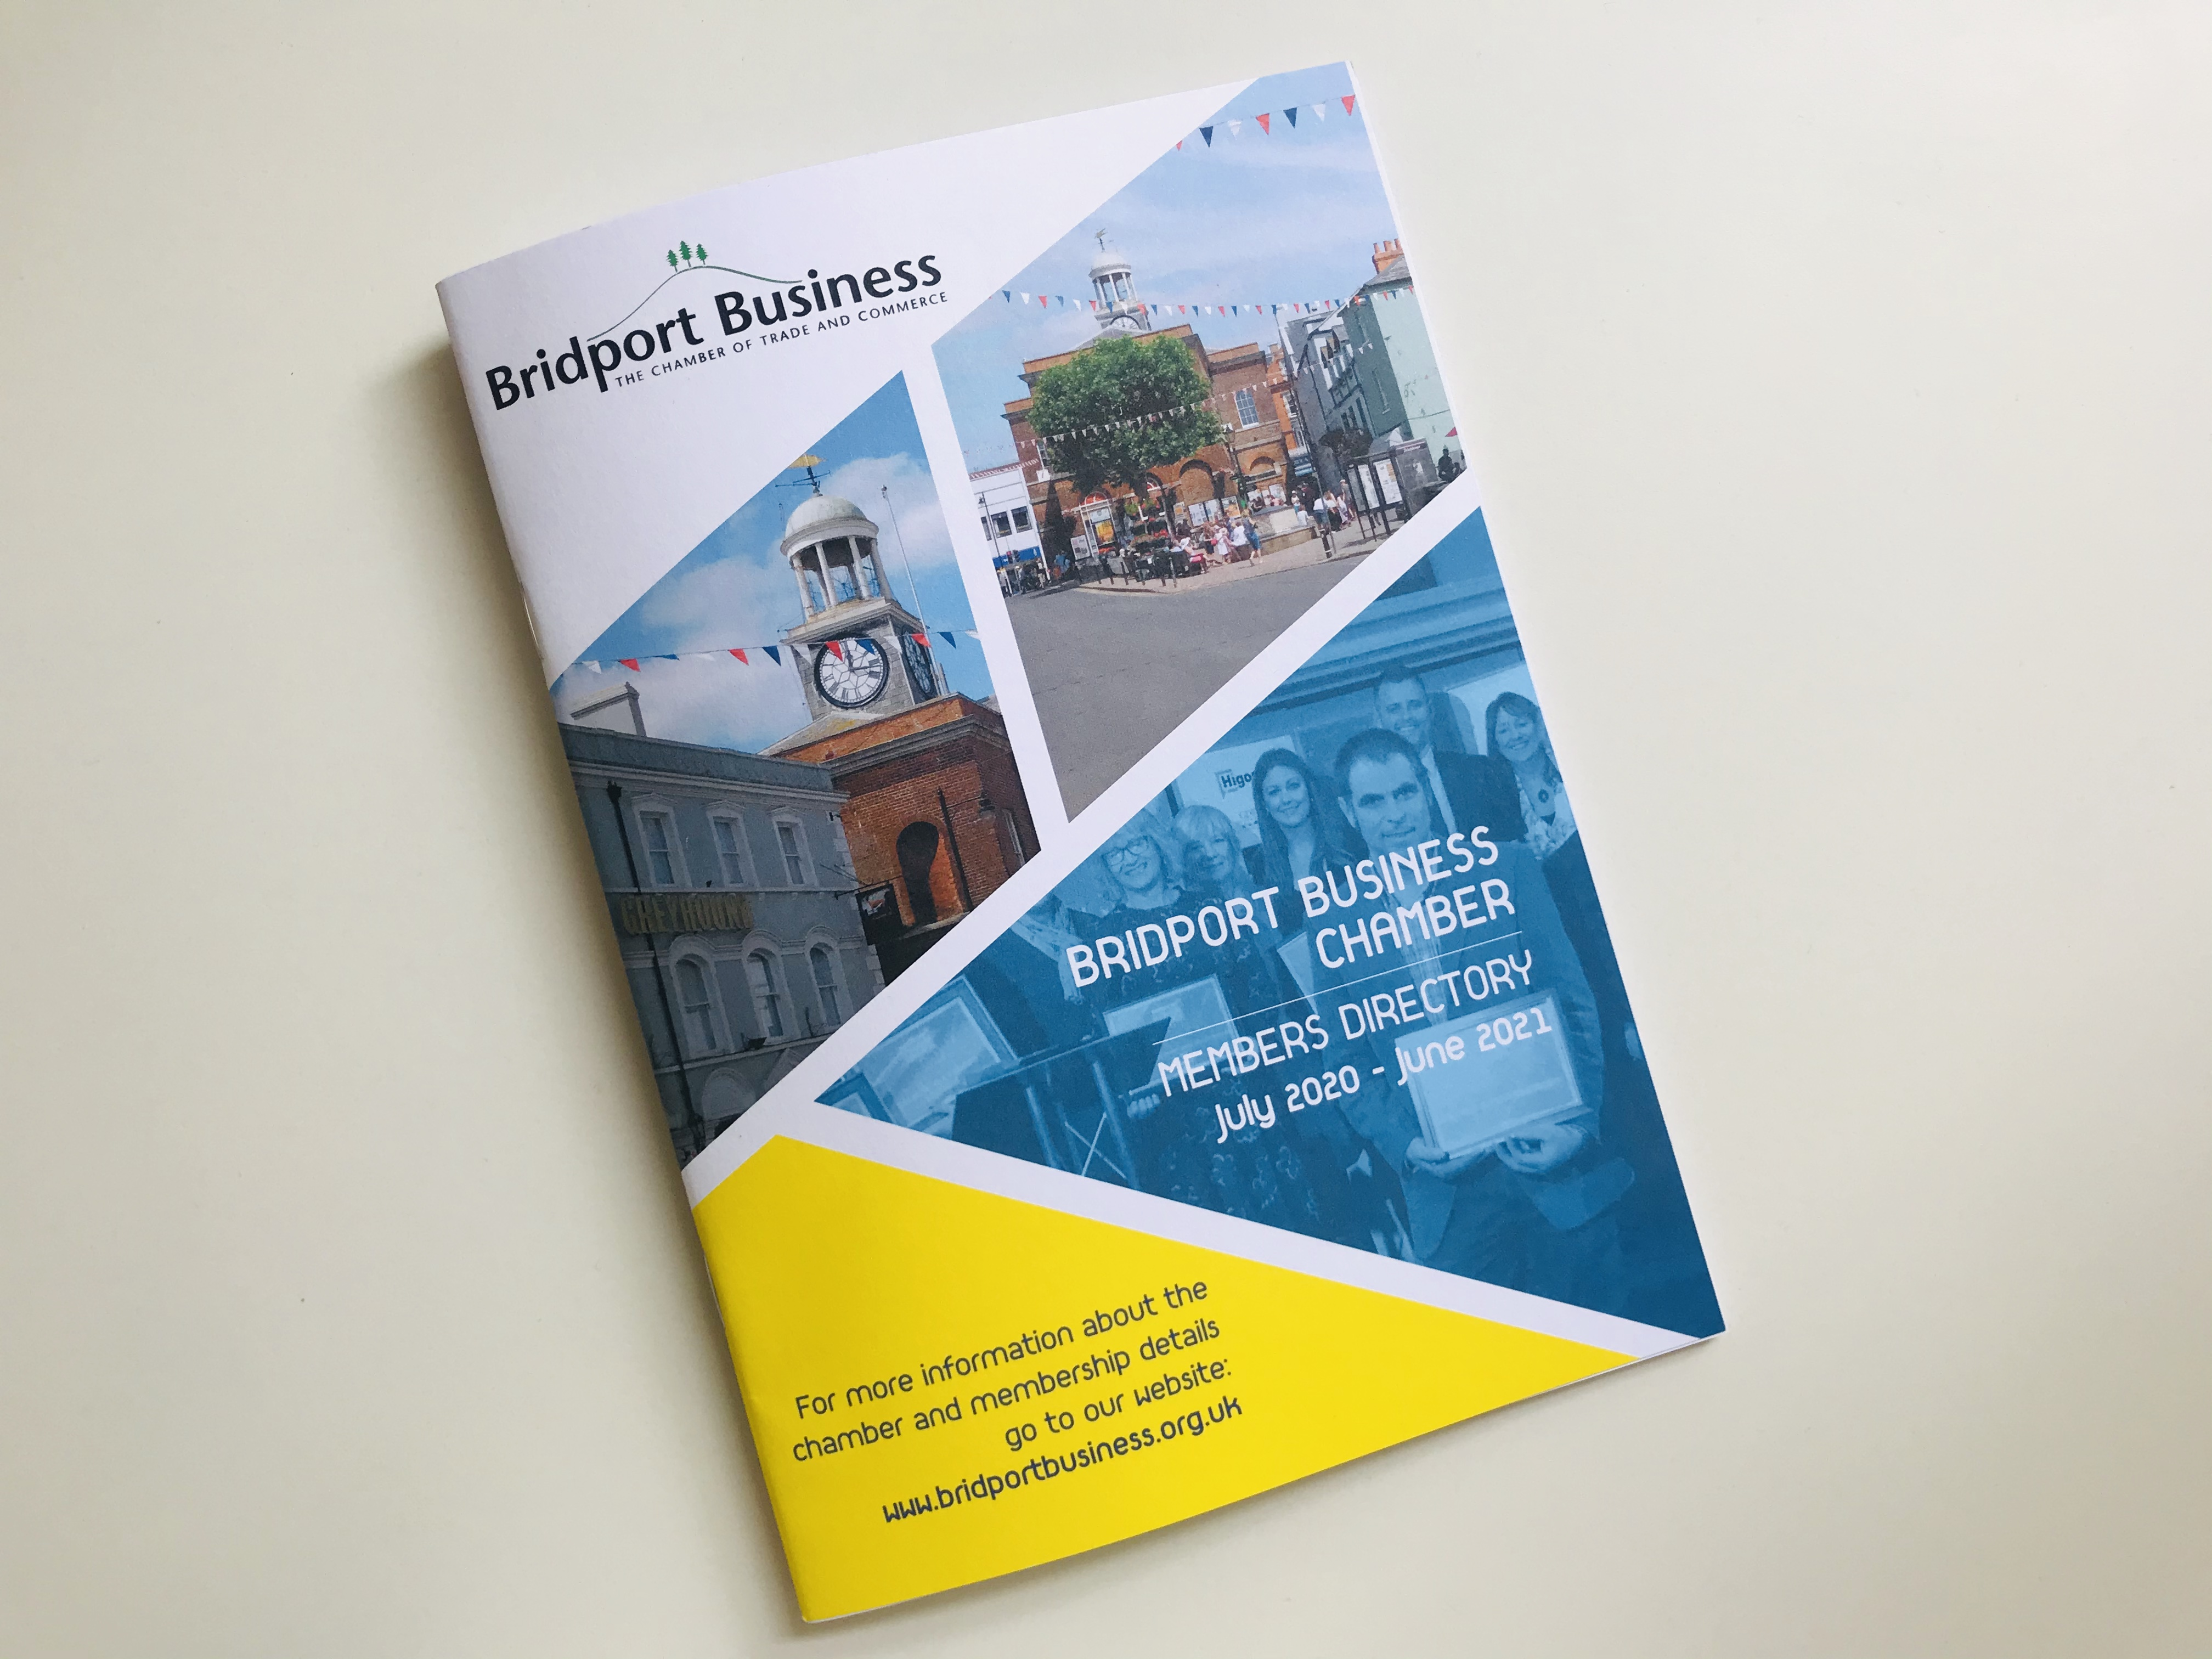 Bridport Business Chamber Directory – Available Now!